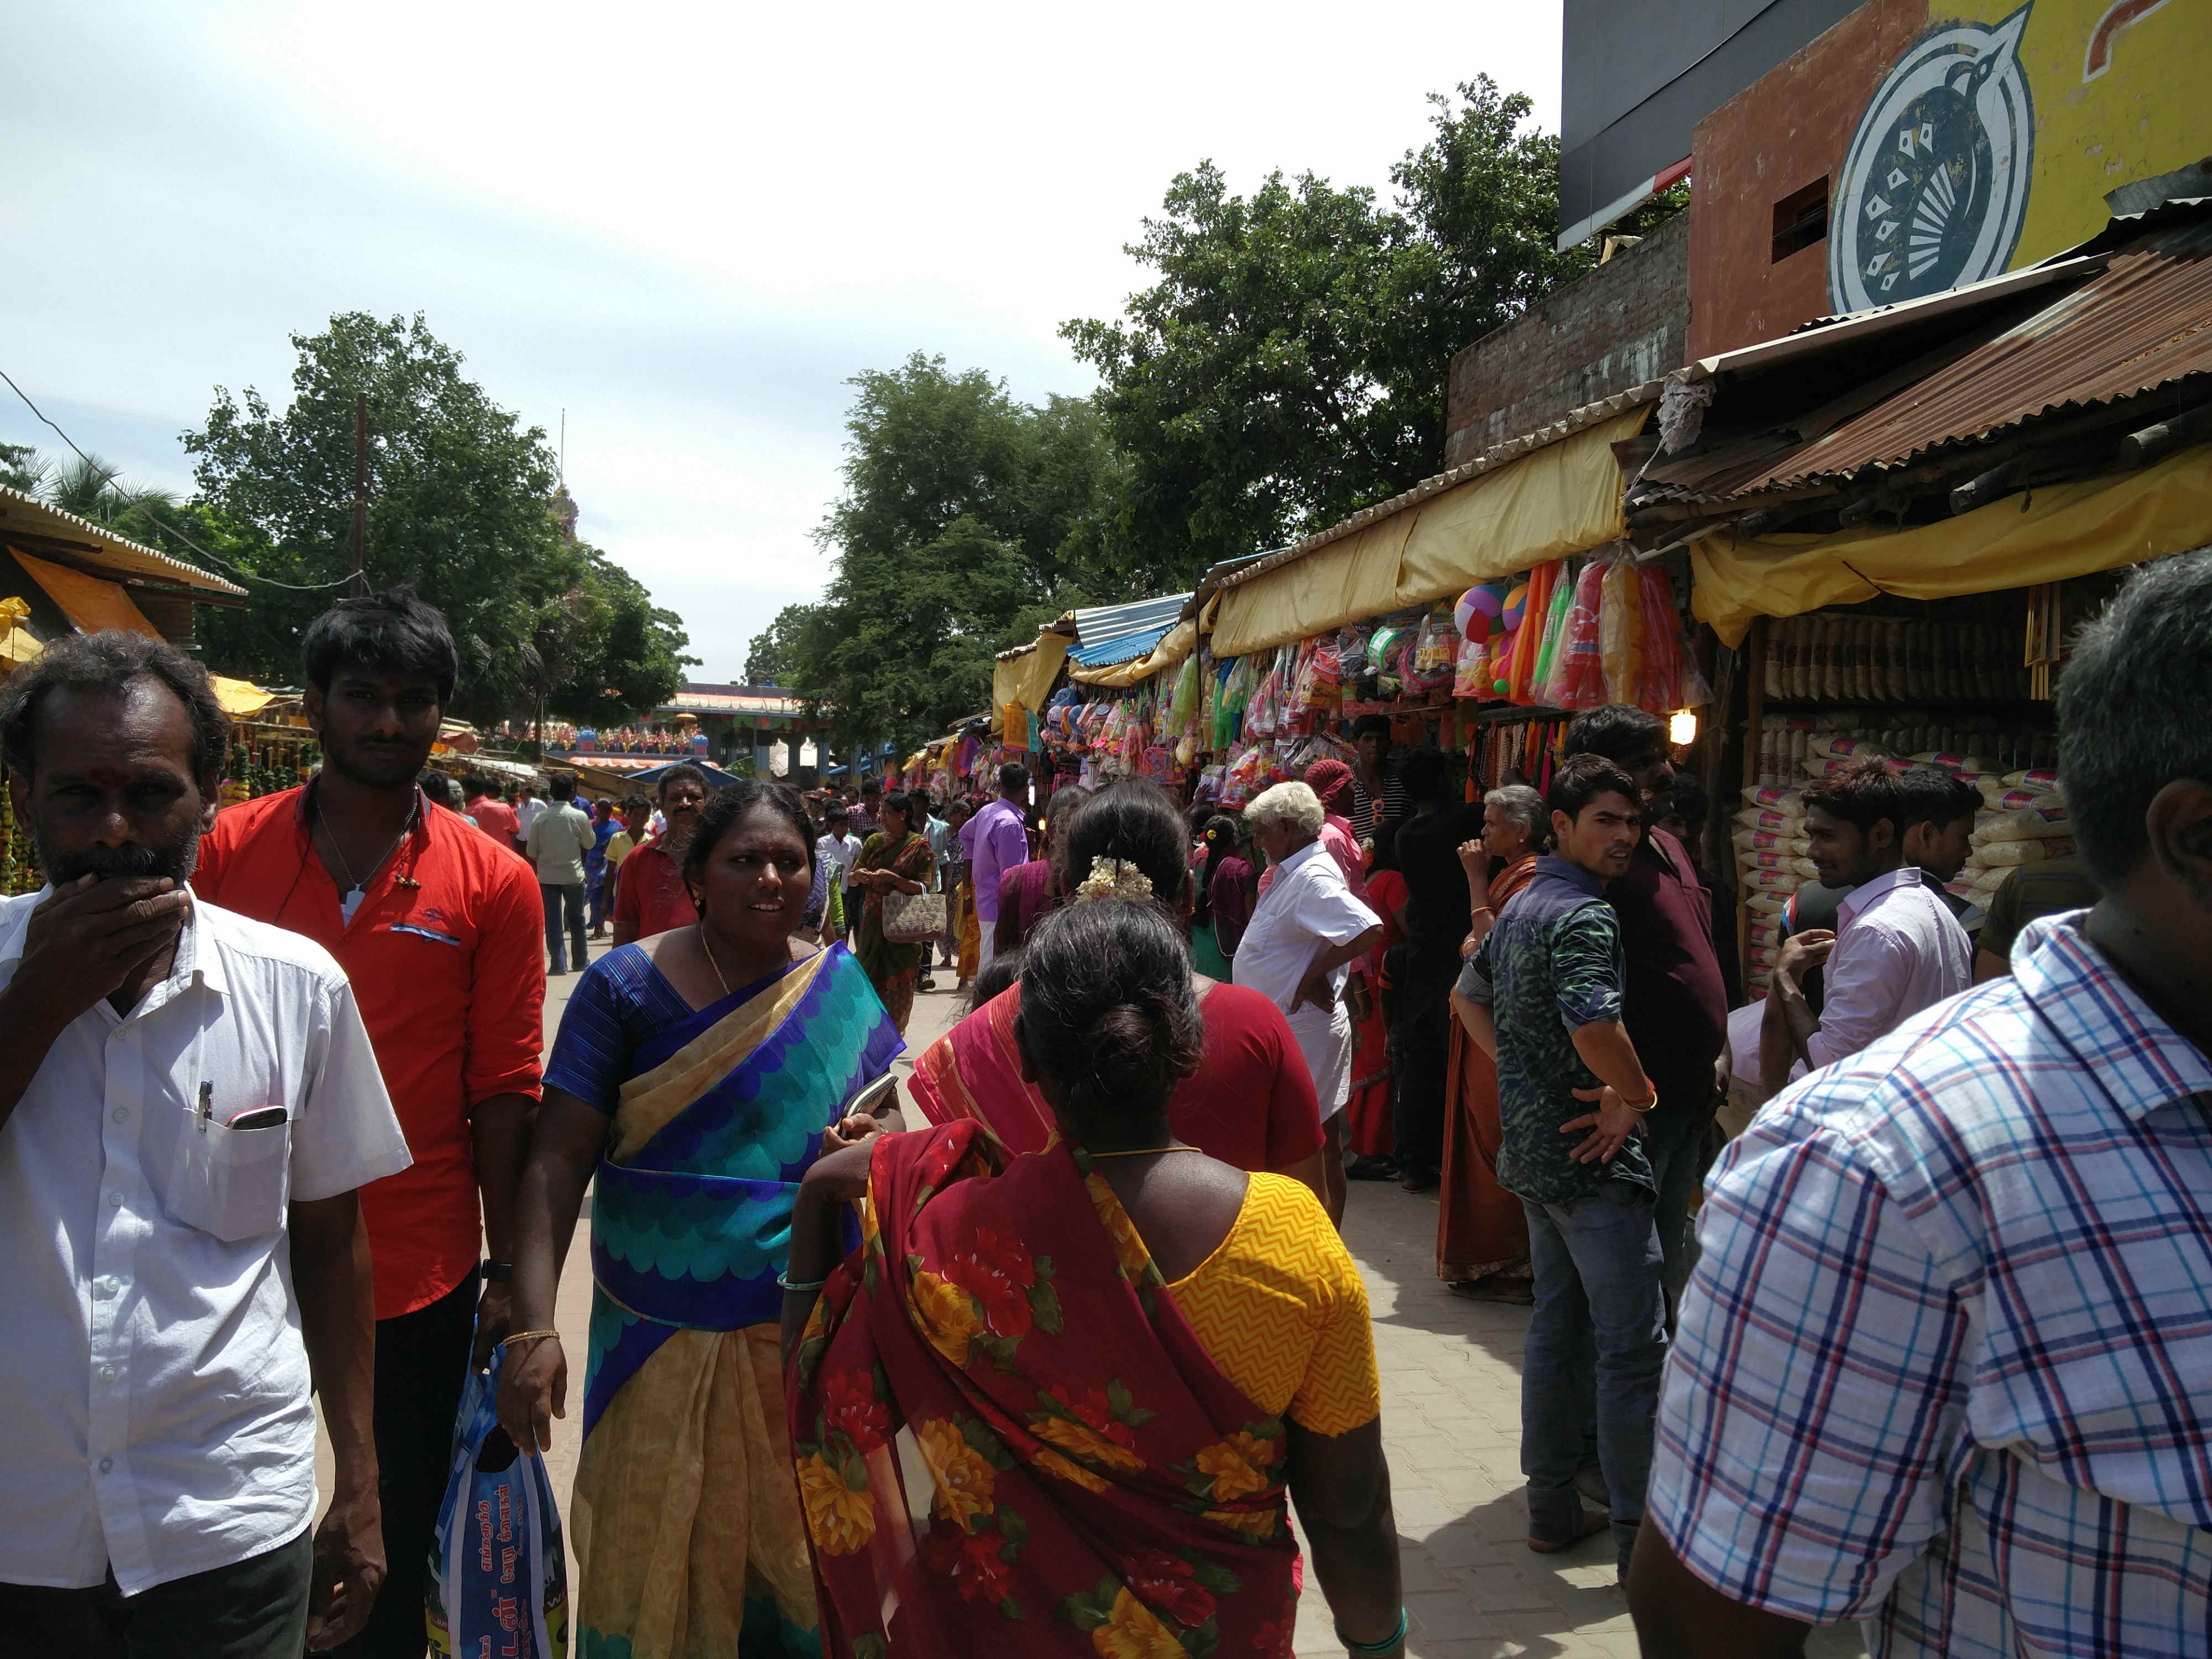 The crowded market place in Periapalayam.